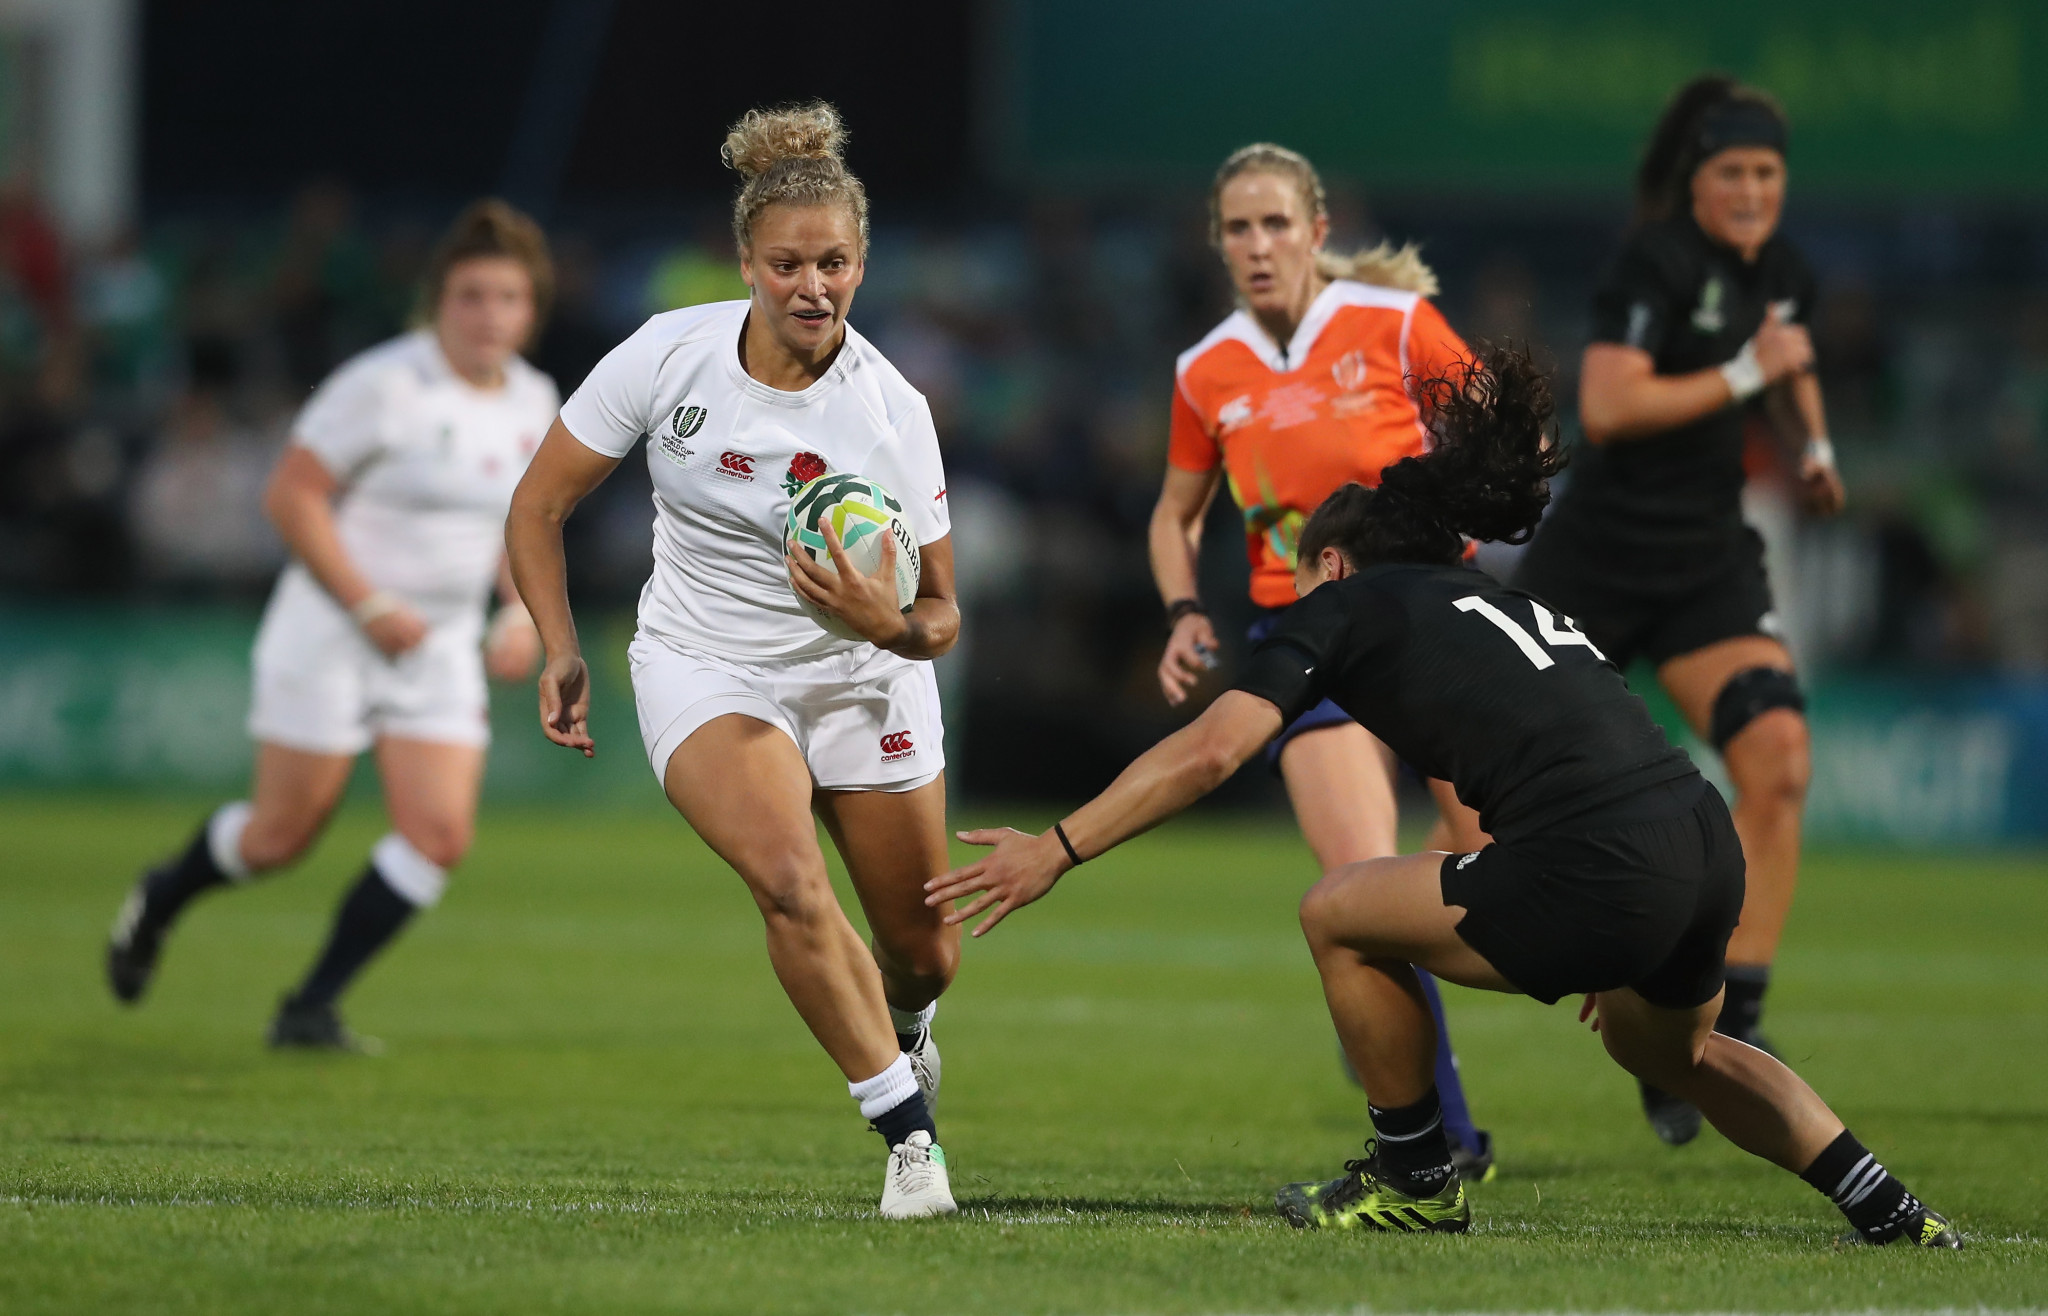 A feasibility study is ongoing for the 2025 Women's Rugby World Cup ©Getty Images